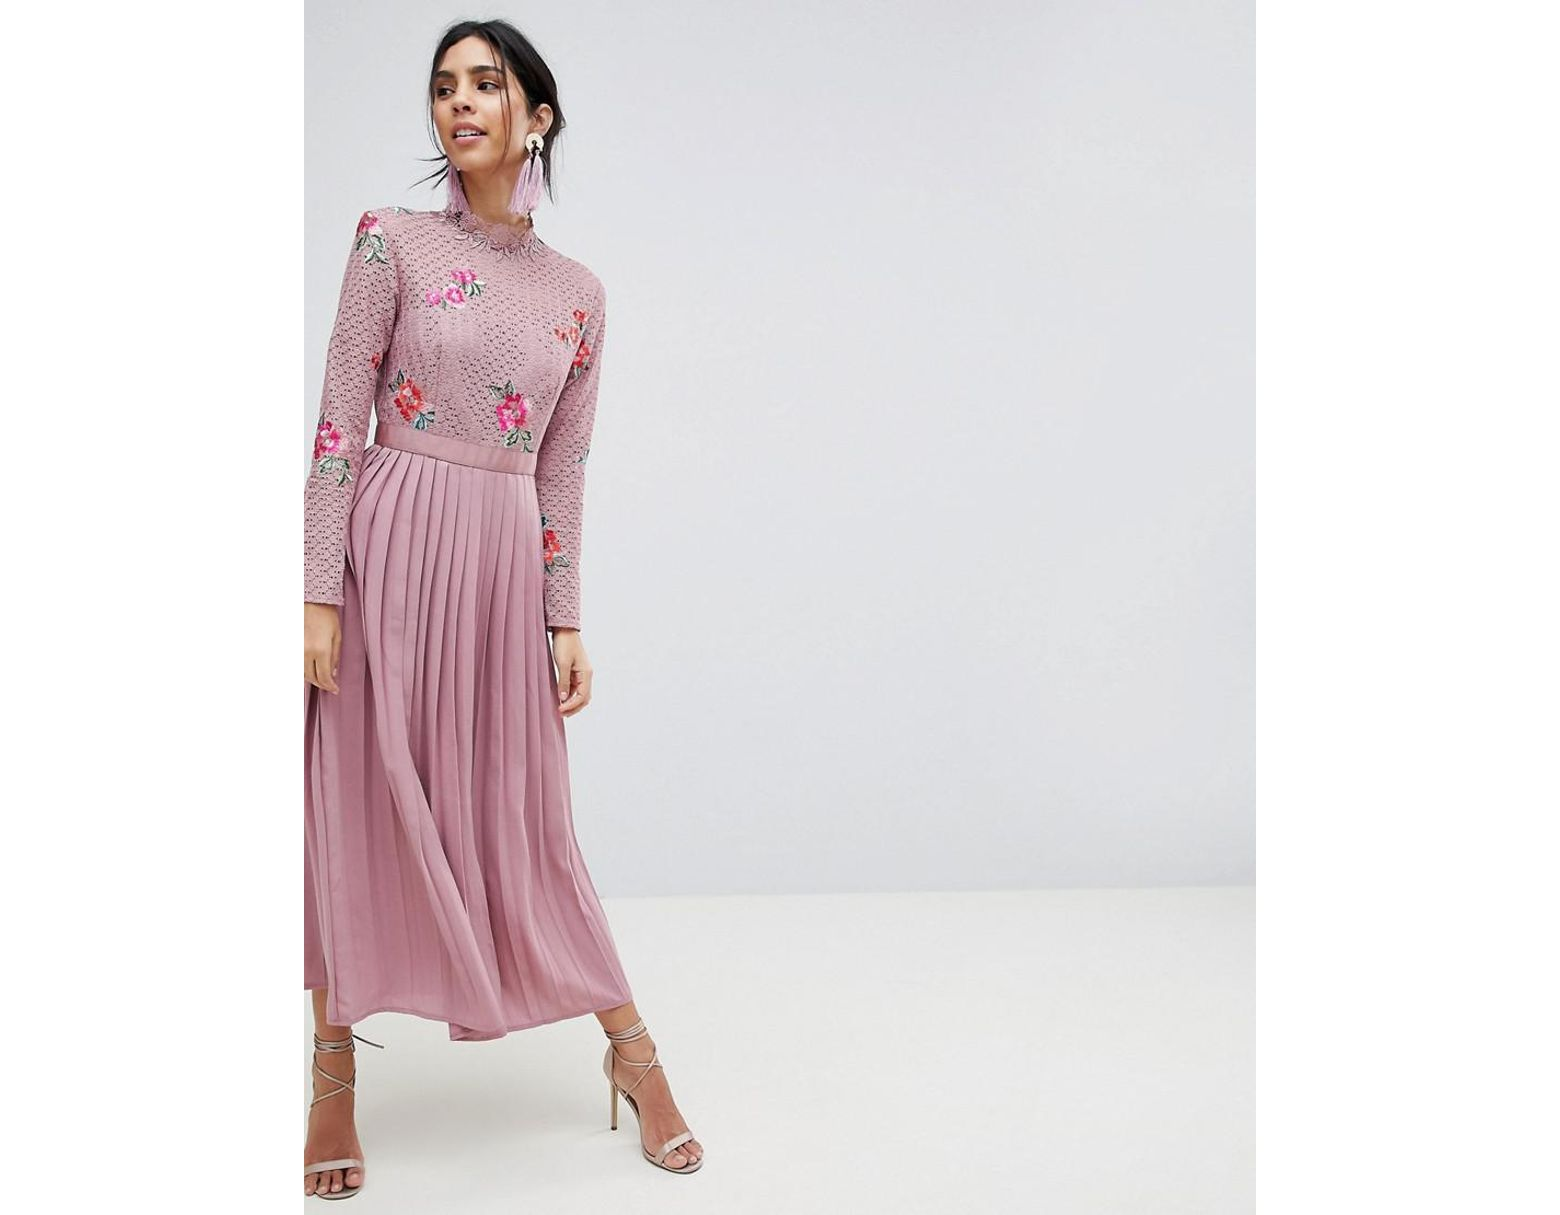 740e9126d5e66 Little Mistress Embroidered Lace Top Midaxi Dress With Pleated Skirt in  Pink - Lyst